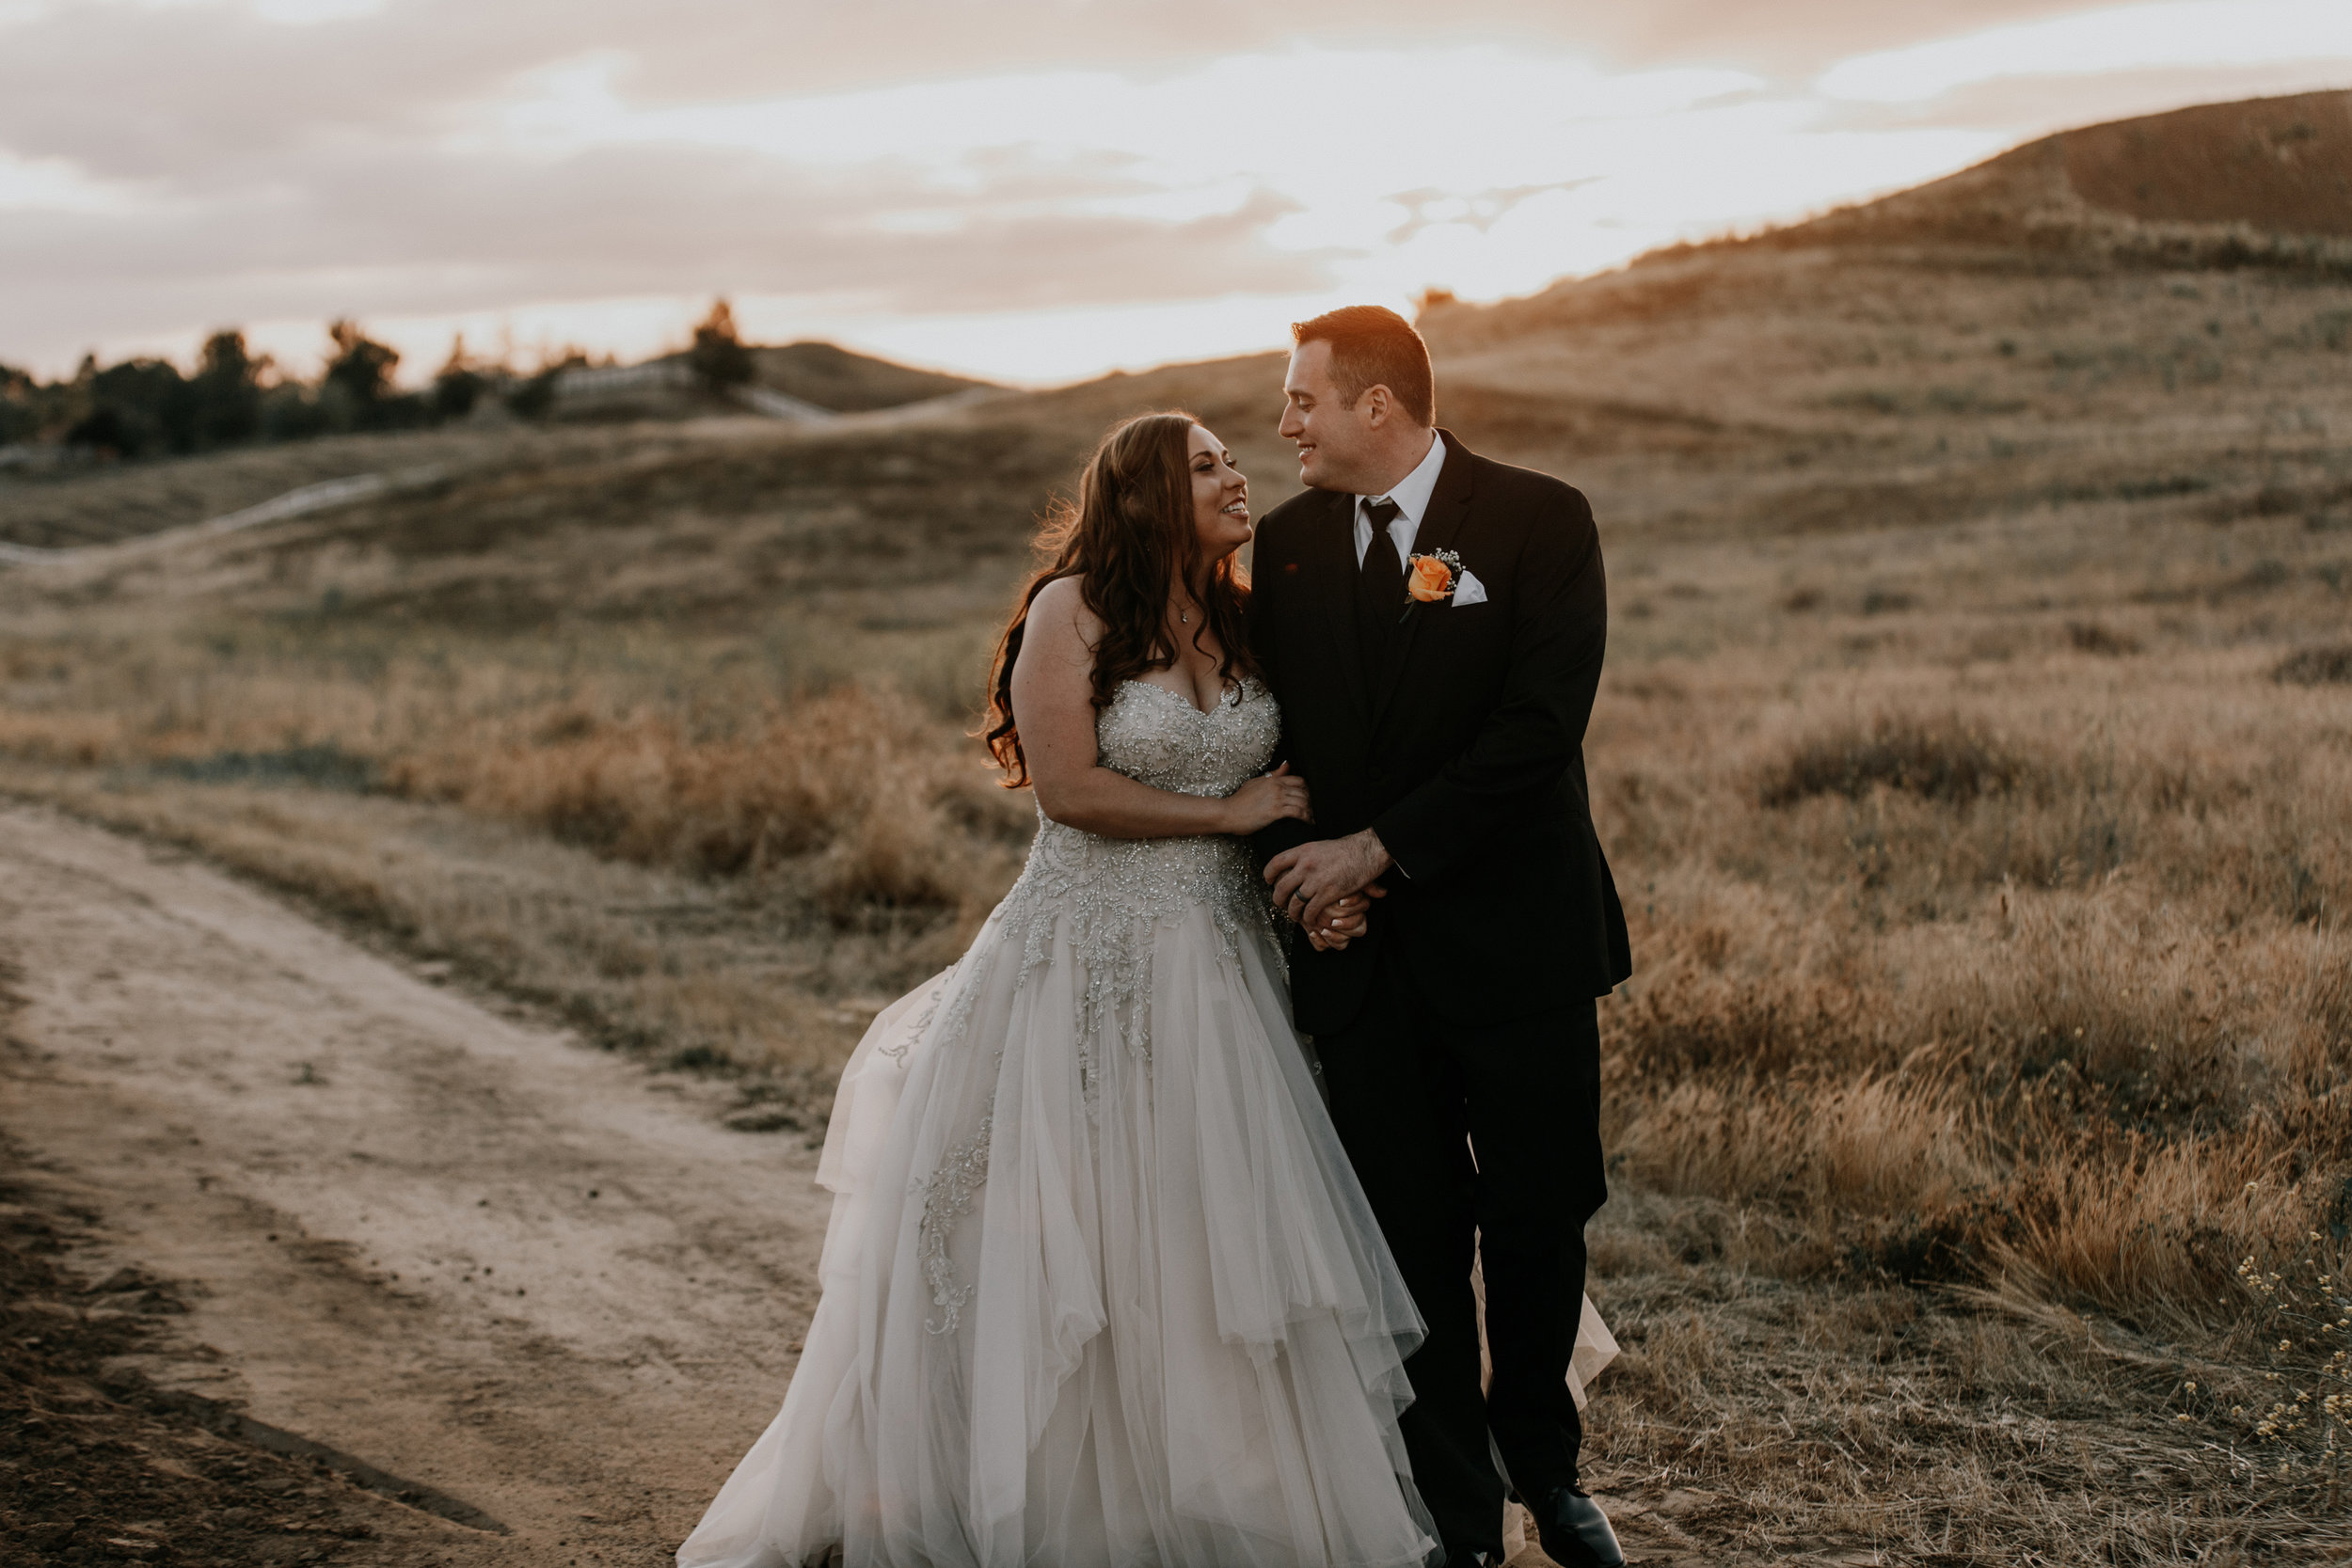 Temeculaweddingphotos.jpg